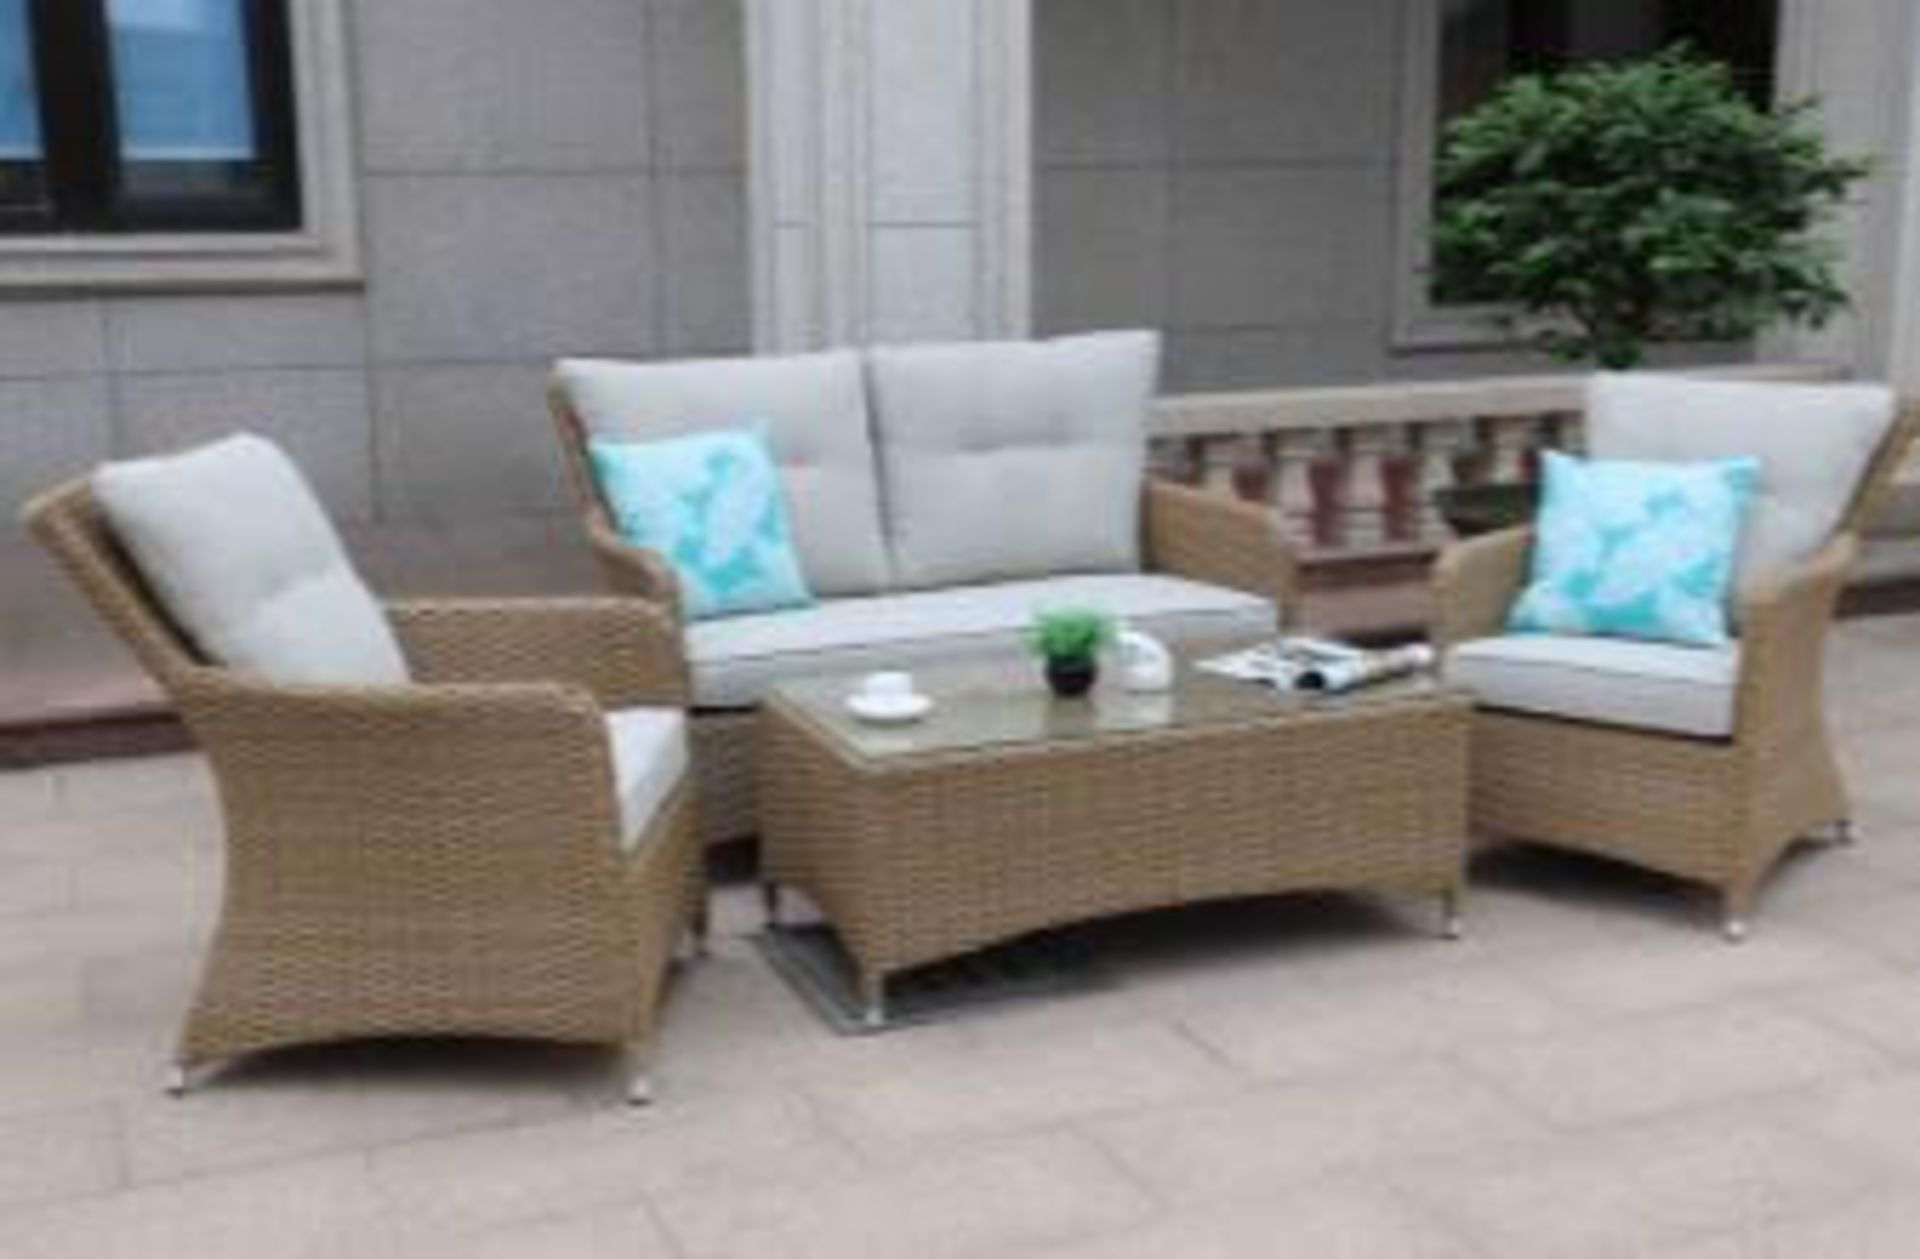 + VAT Brand New Chelsea Garden Company Beige Double Sofa + 2 Armchair Set - Item Is Available